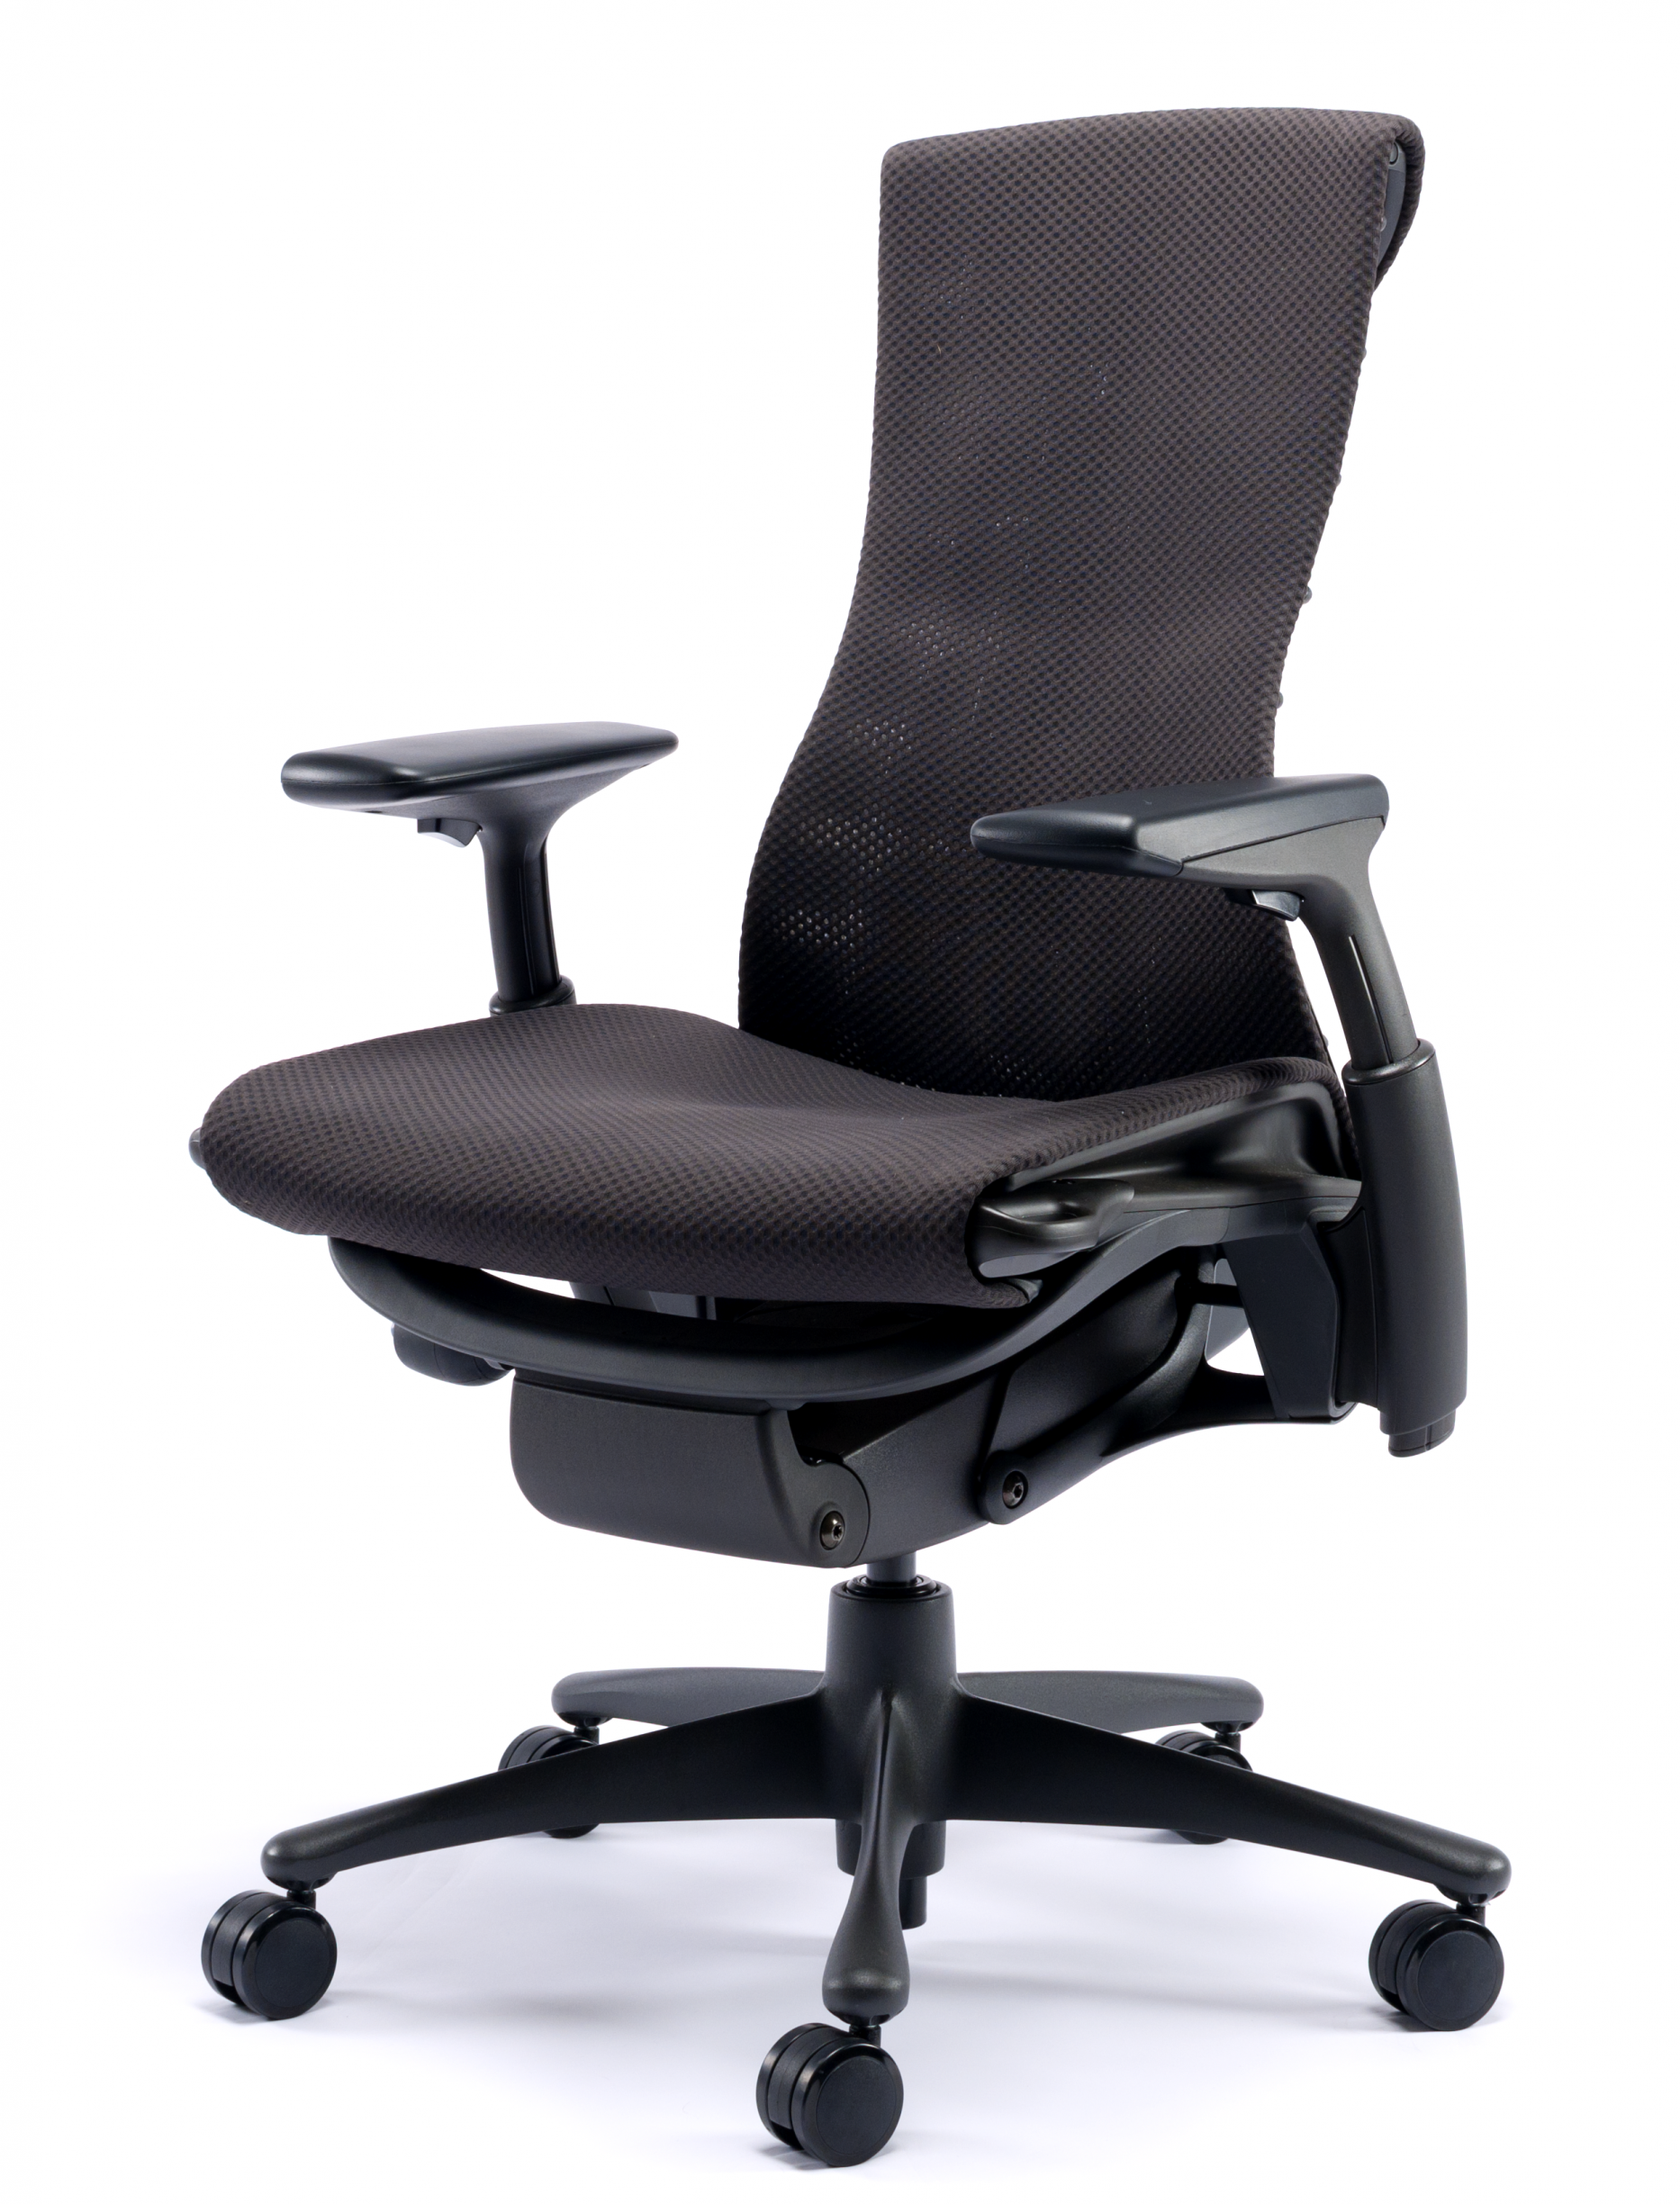 games timeoffice back high chair desk bolt pin office ergonomic series gaming by best